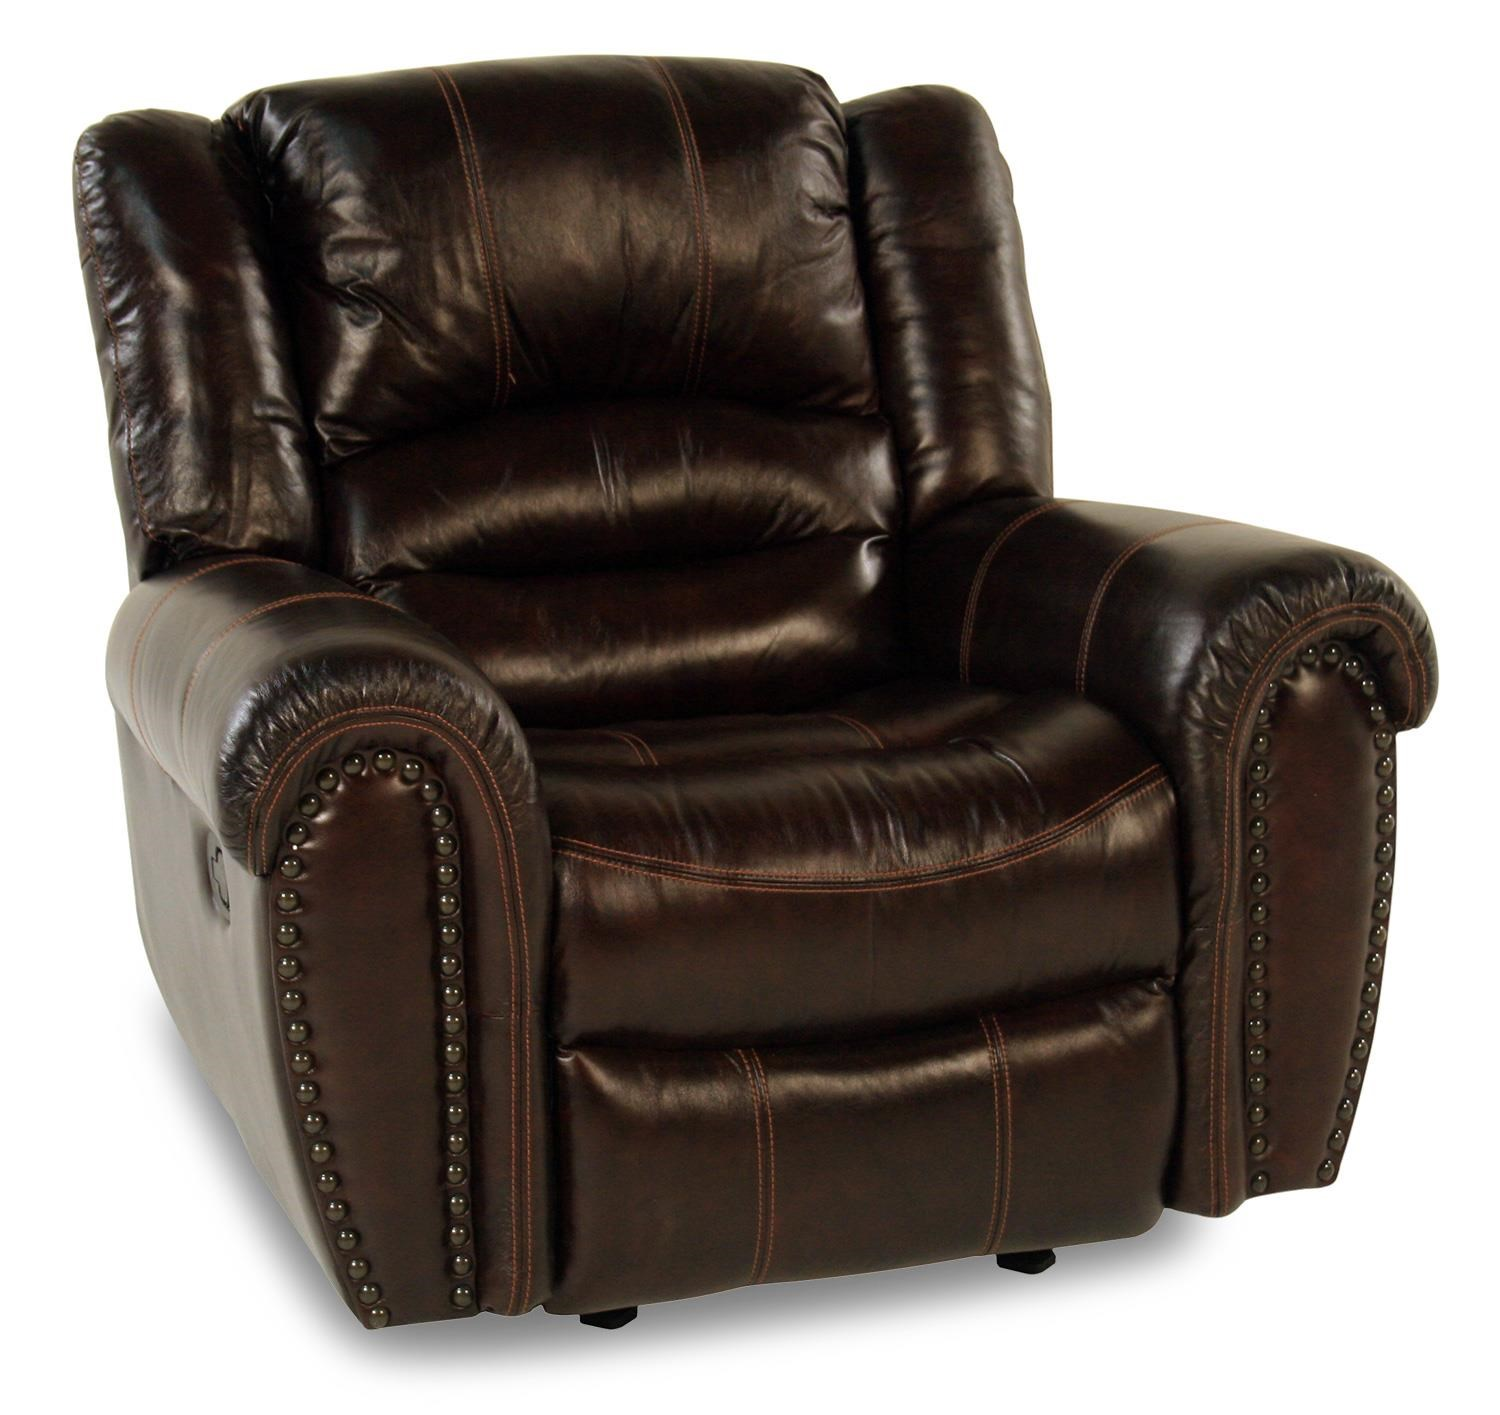 Leather Glider Recliner w/ Nailhead Trim